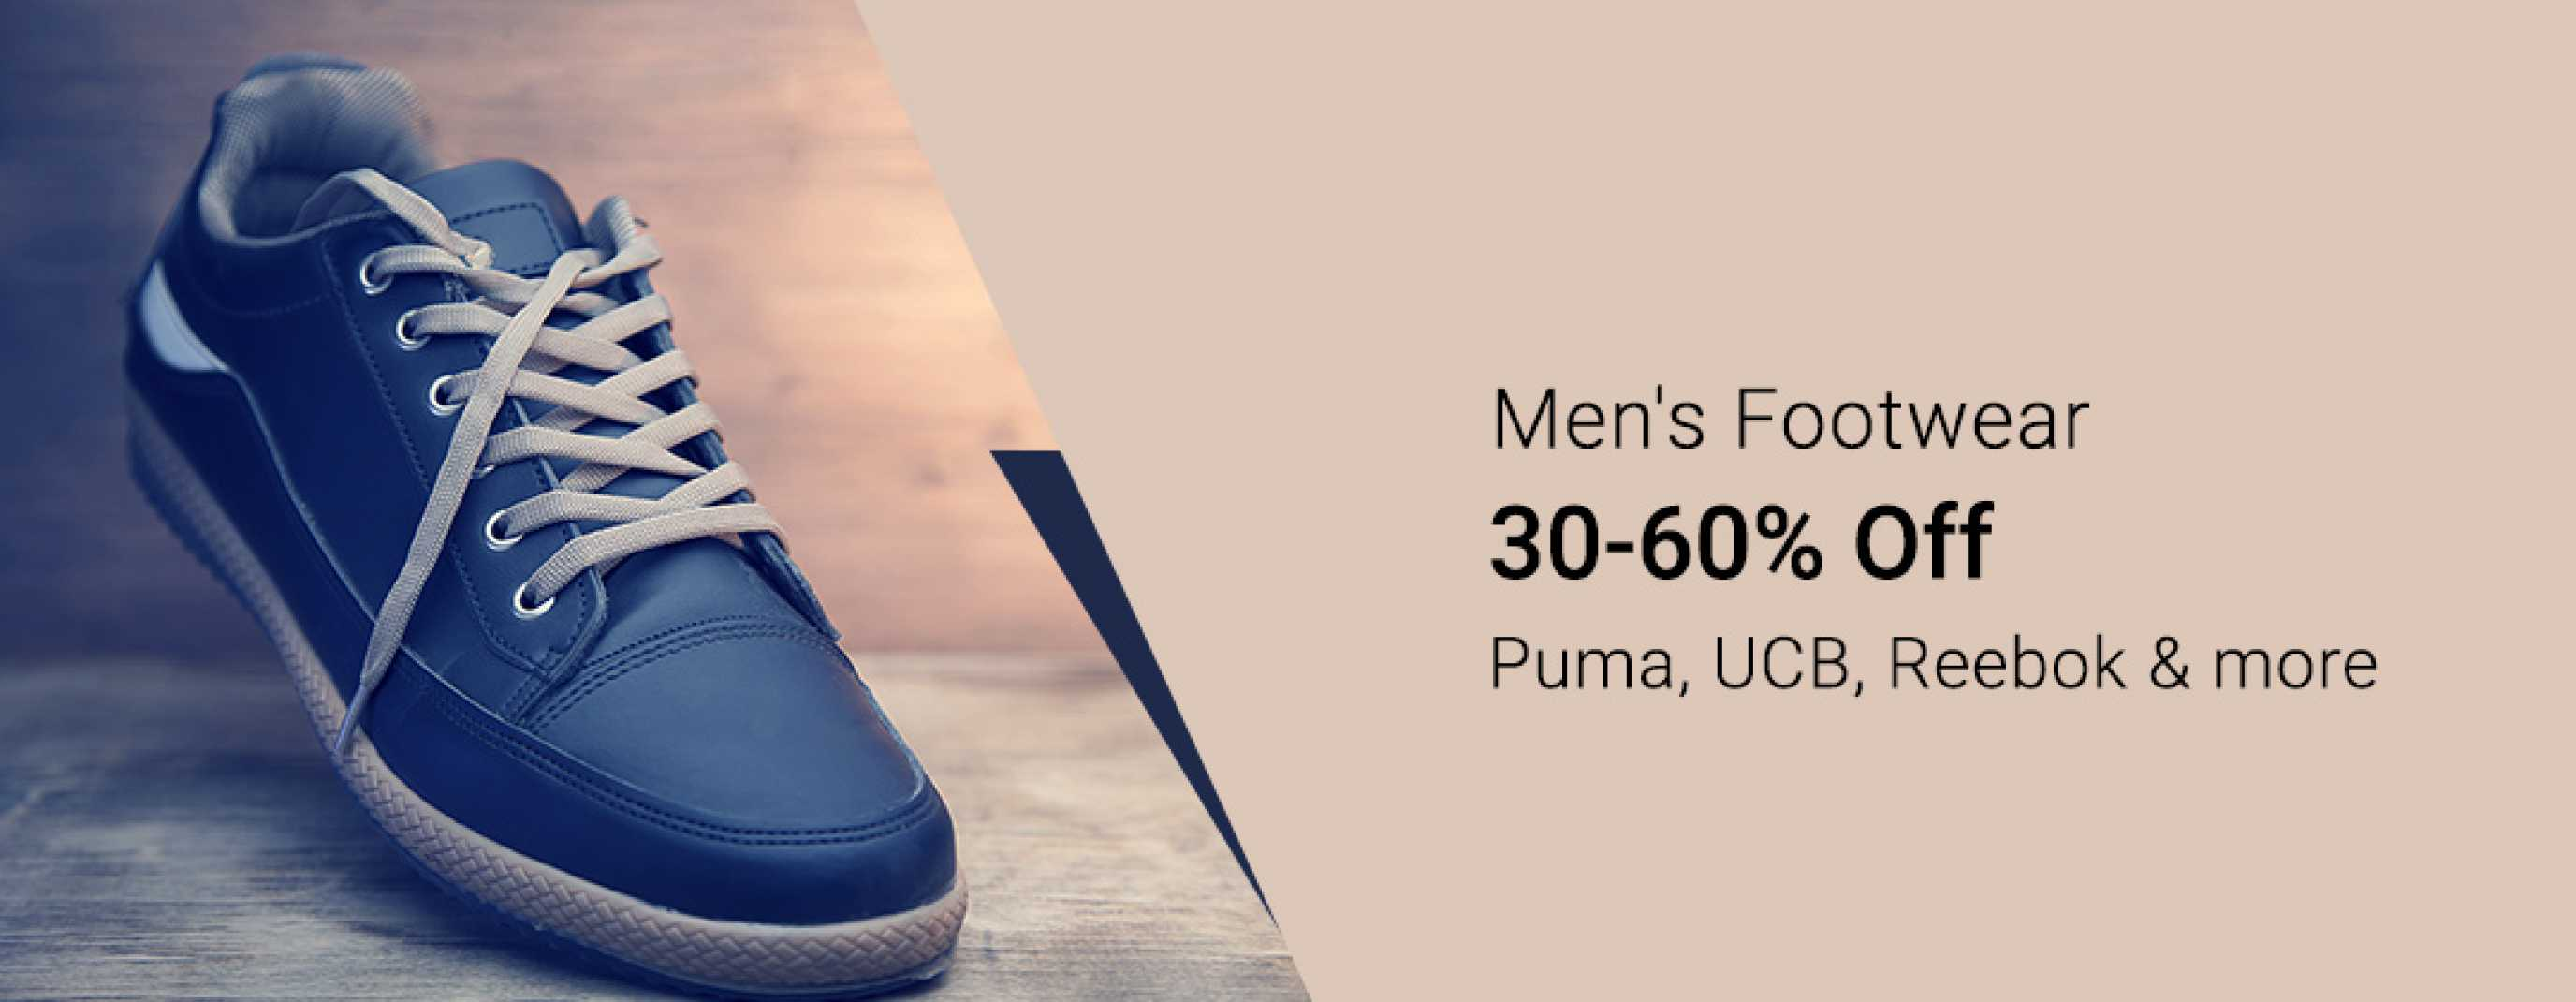 Men's Footwear - Buy Men's Footwear & Shoes Online at Best Price ...